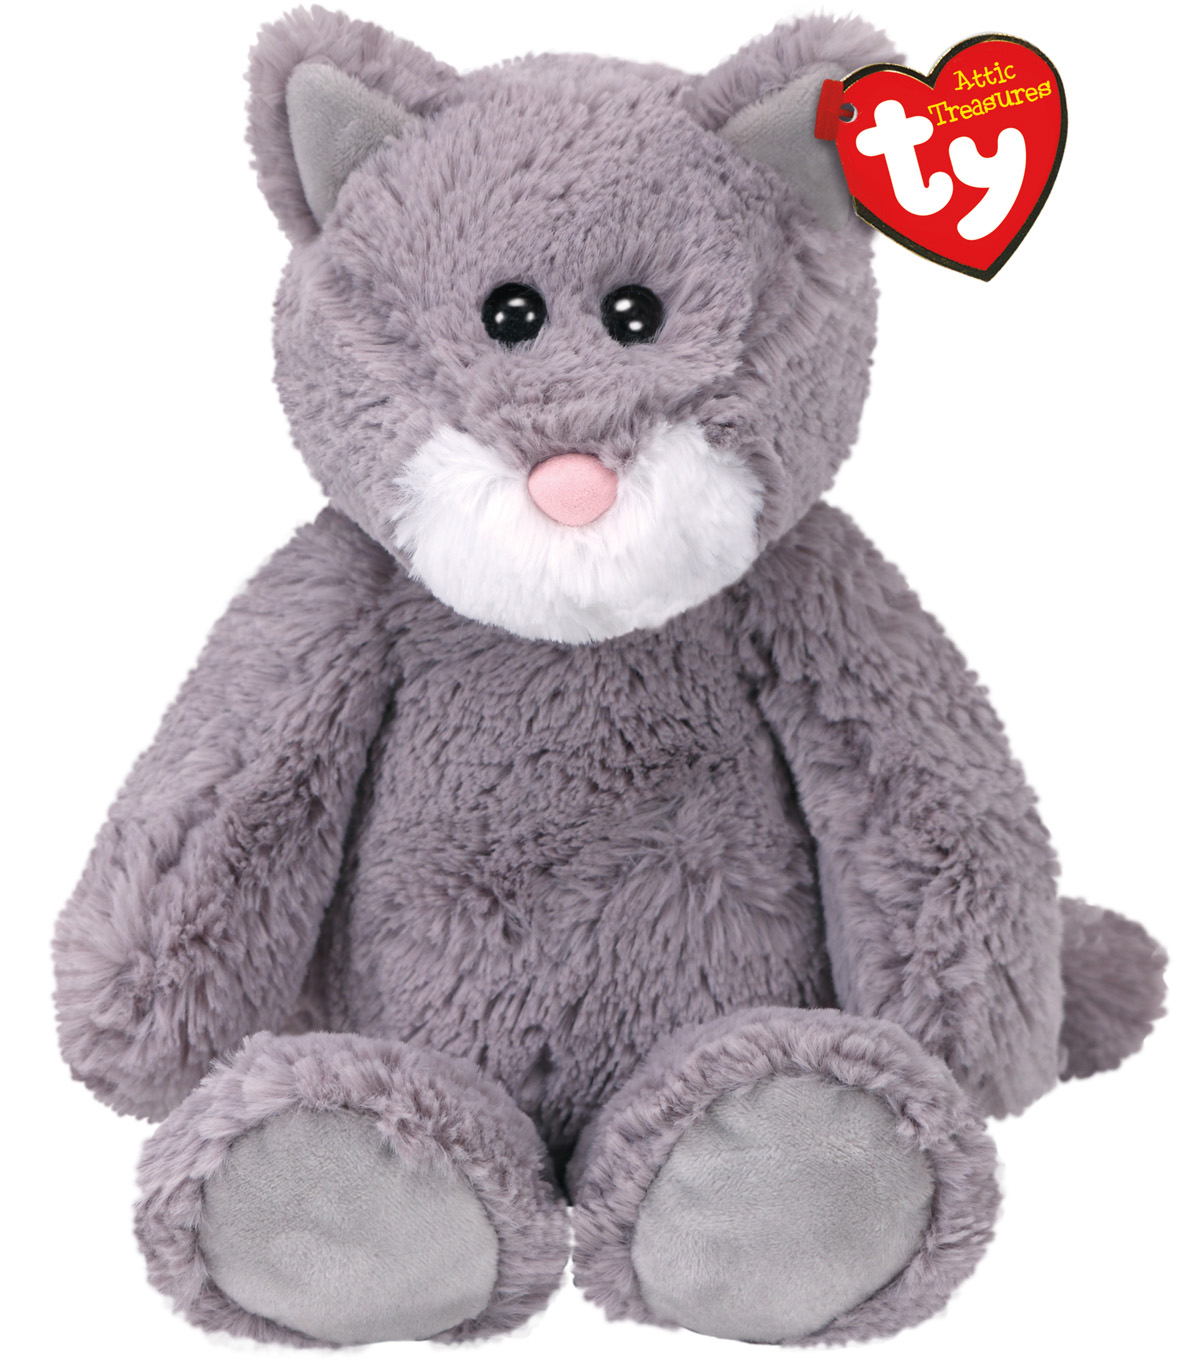 TY Beanie Boo Kit - Cat  5aed161836d